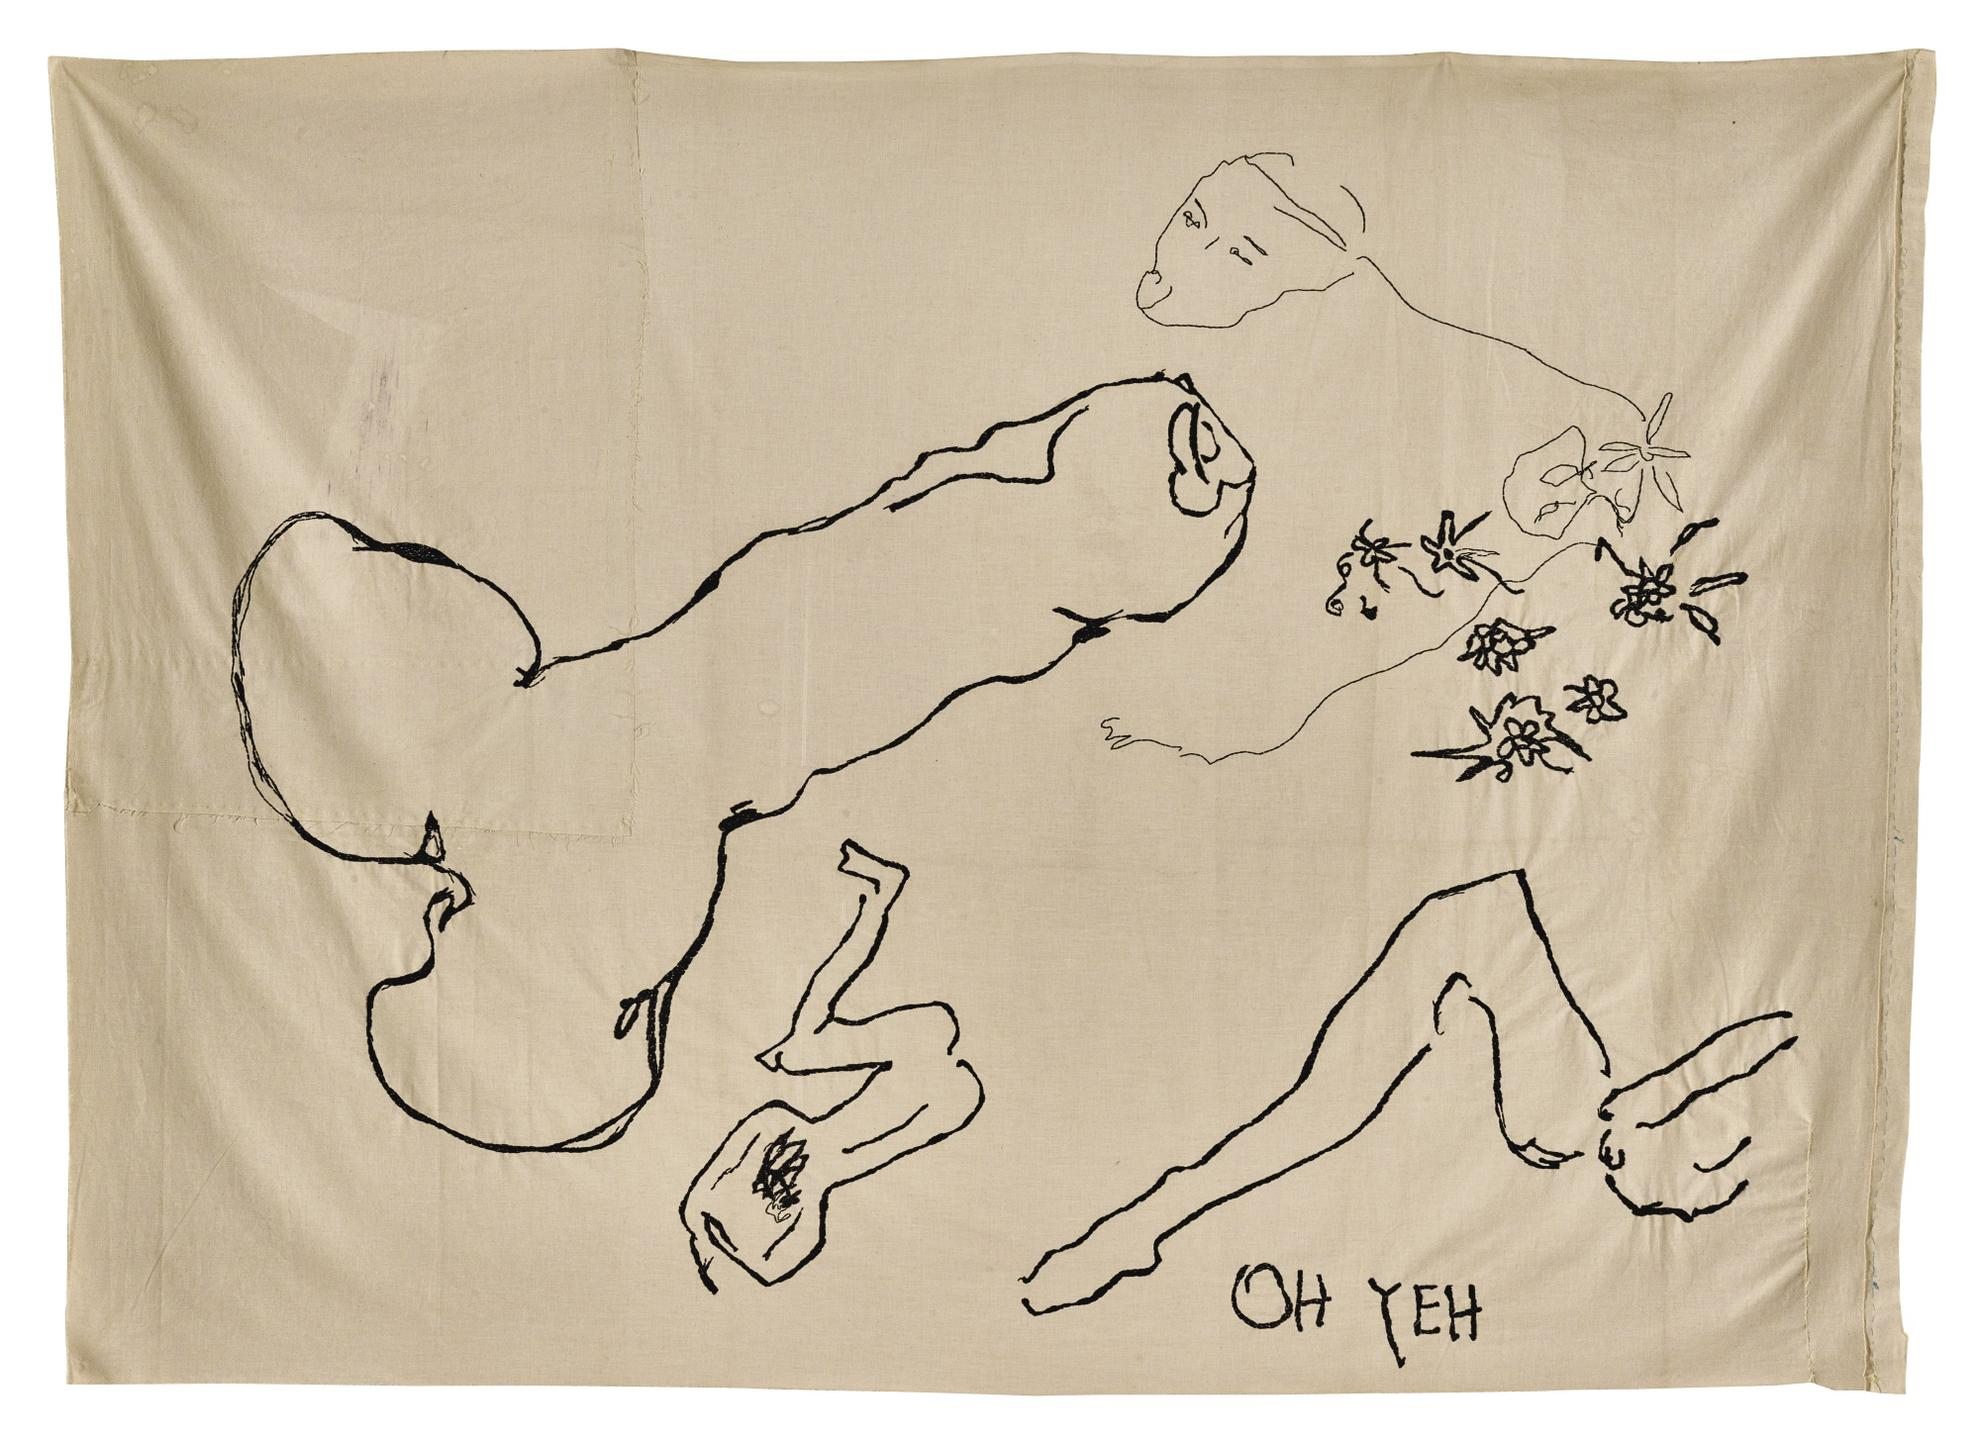 Tracey Emin-Oh Yeh-2001